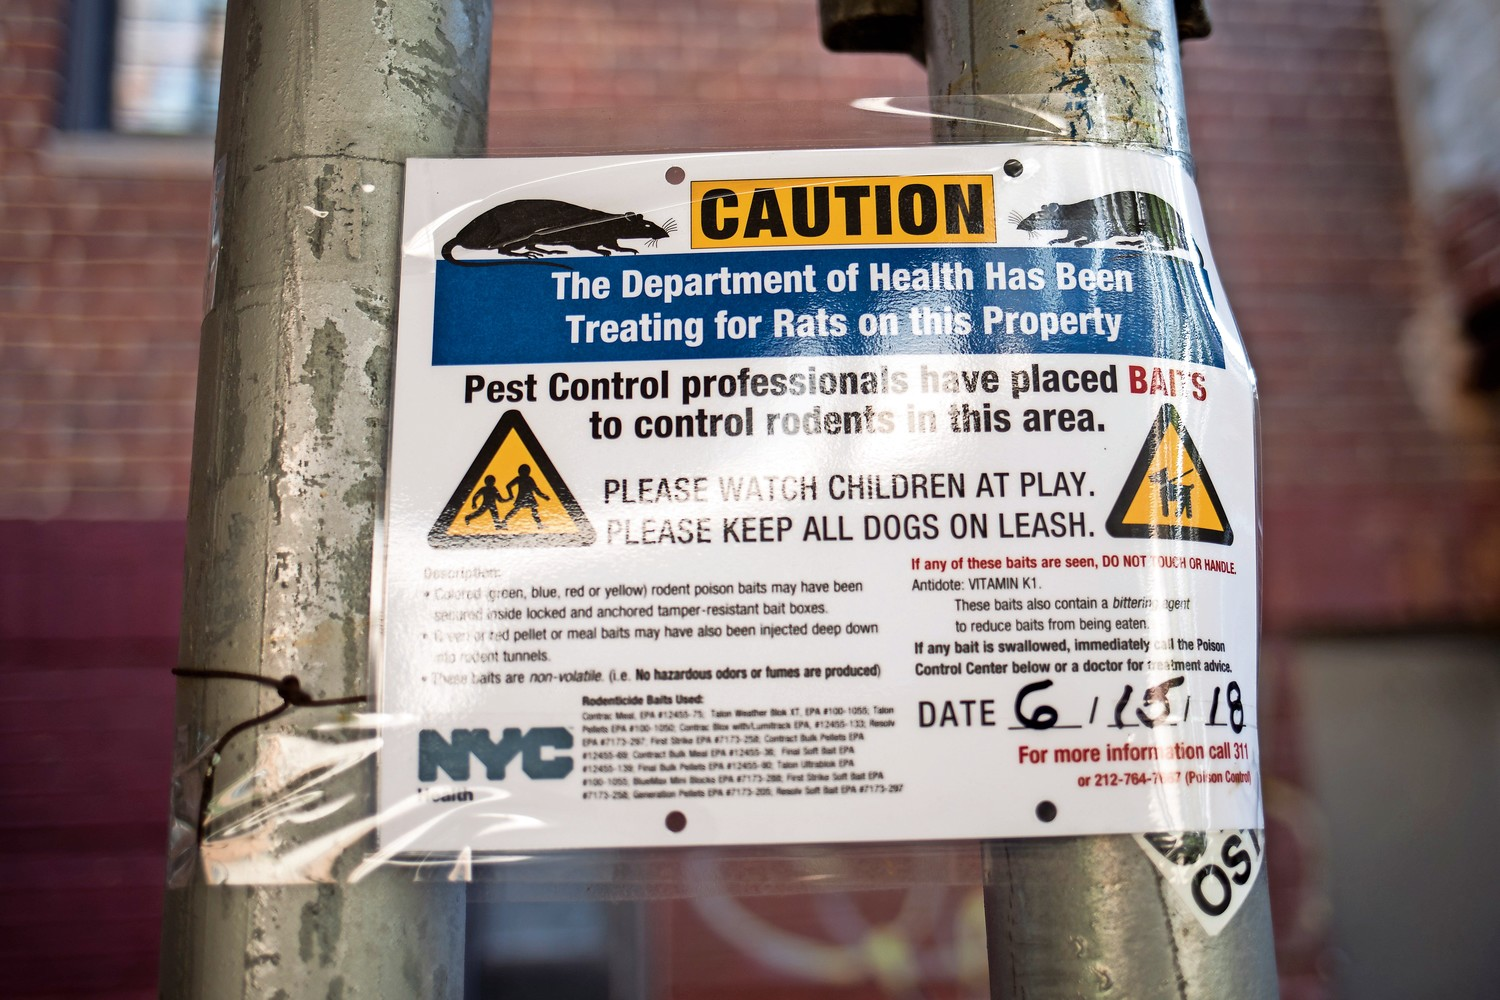 A sign warns residents that baits have been placed in the area to trap and kill rats, which have recently flocked to the step street connecting Waldo and Irwin avenues at West 238th Street.